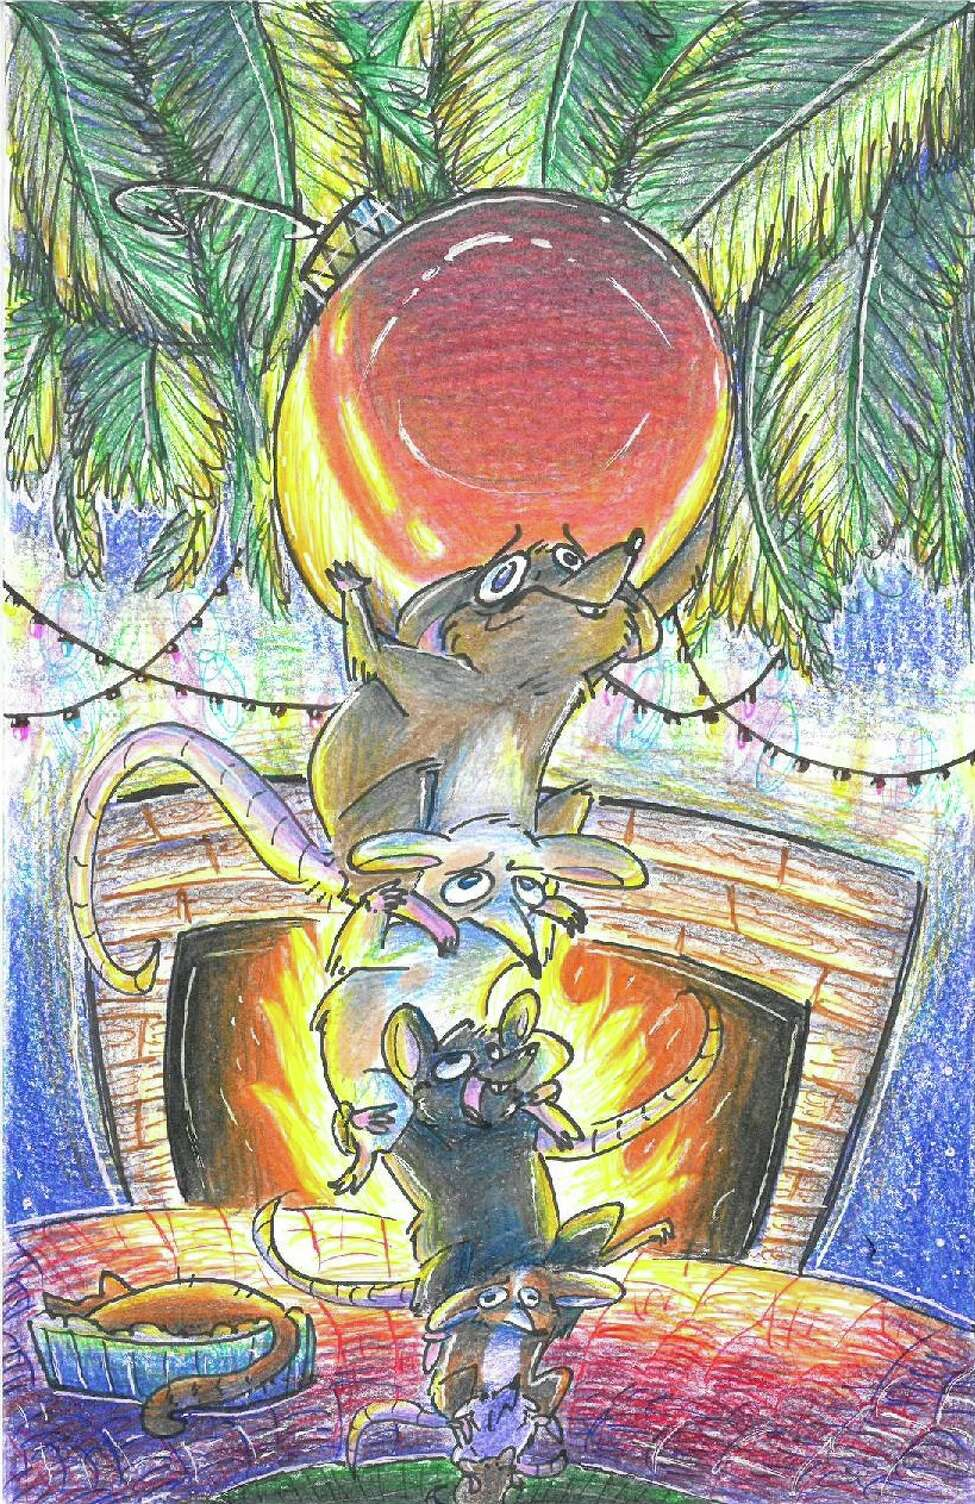 Grace Bombard, a 12th grade student from Loudonville Christian School, is the 2019 Holiday Card Contest grand prize winner. Her card here will be on the front page of the Times Union on Wednesday, Dec. 25.